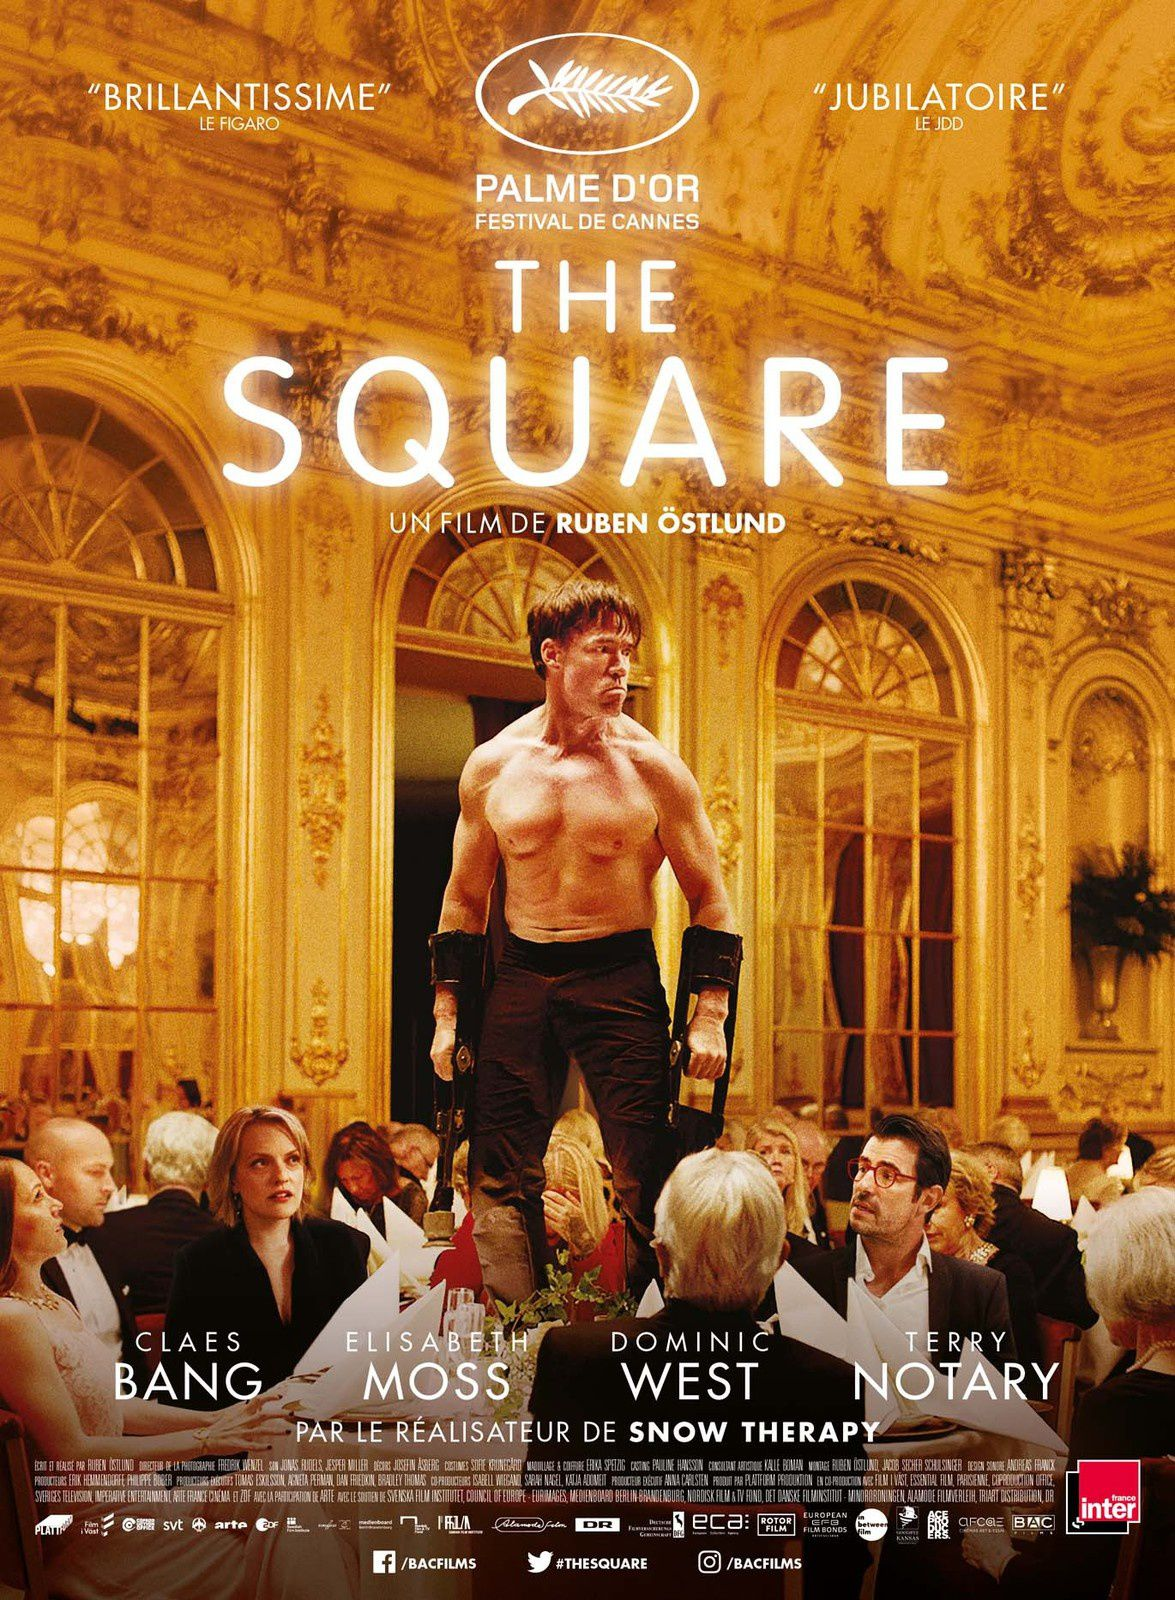 THE SQUARE - PALME D'OR FESTIVAL DE CANNES - Le 18 octobre 2017 au cinéma